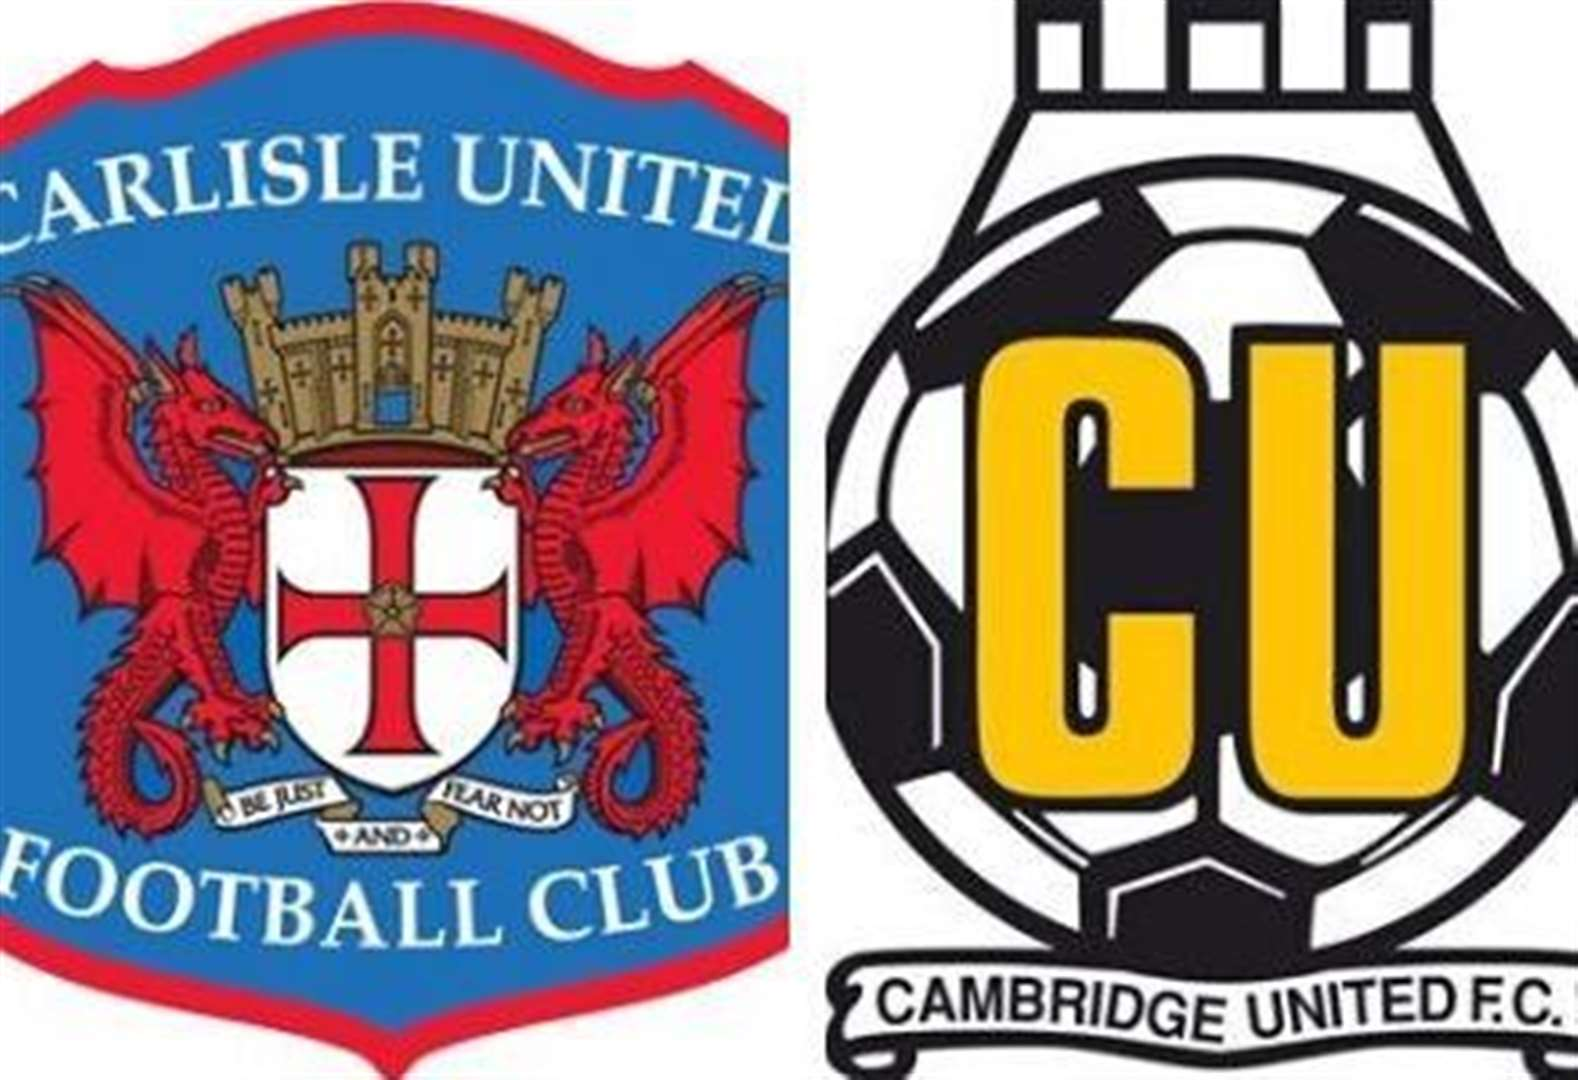 Cambridge United ready for the challenge of Carlisle United in Sky Bet League Two